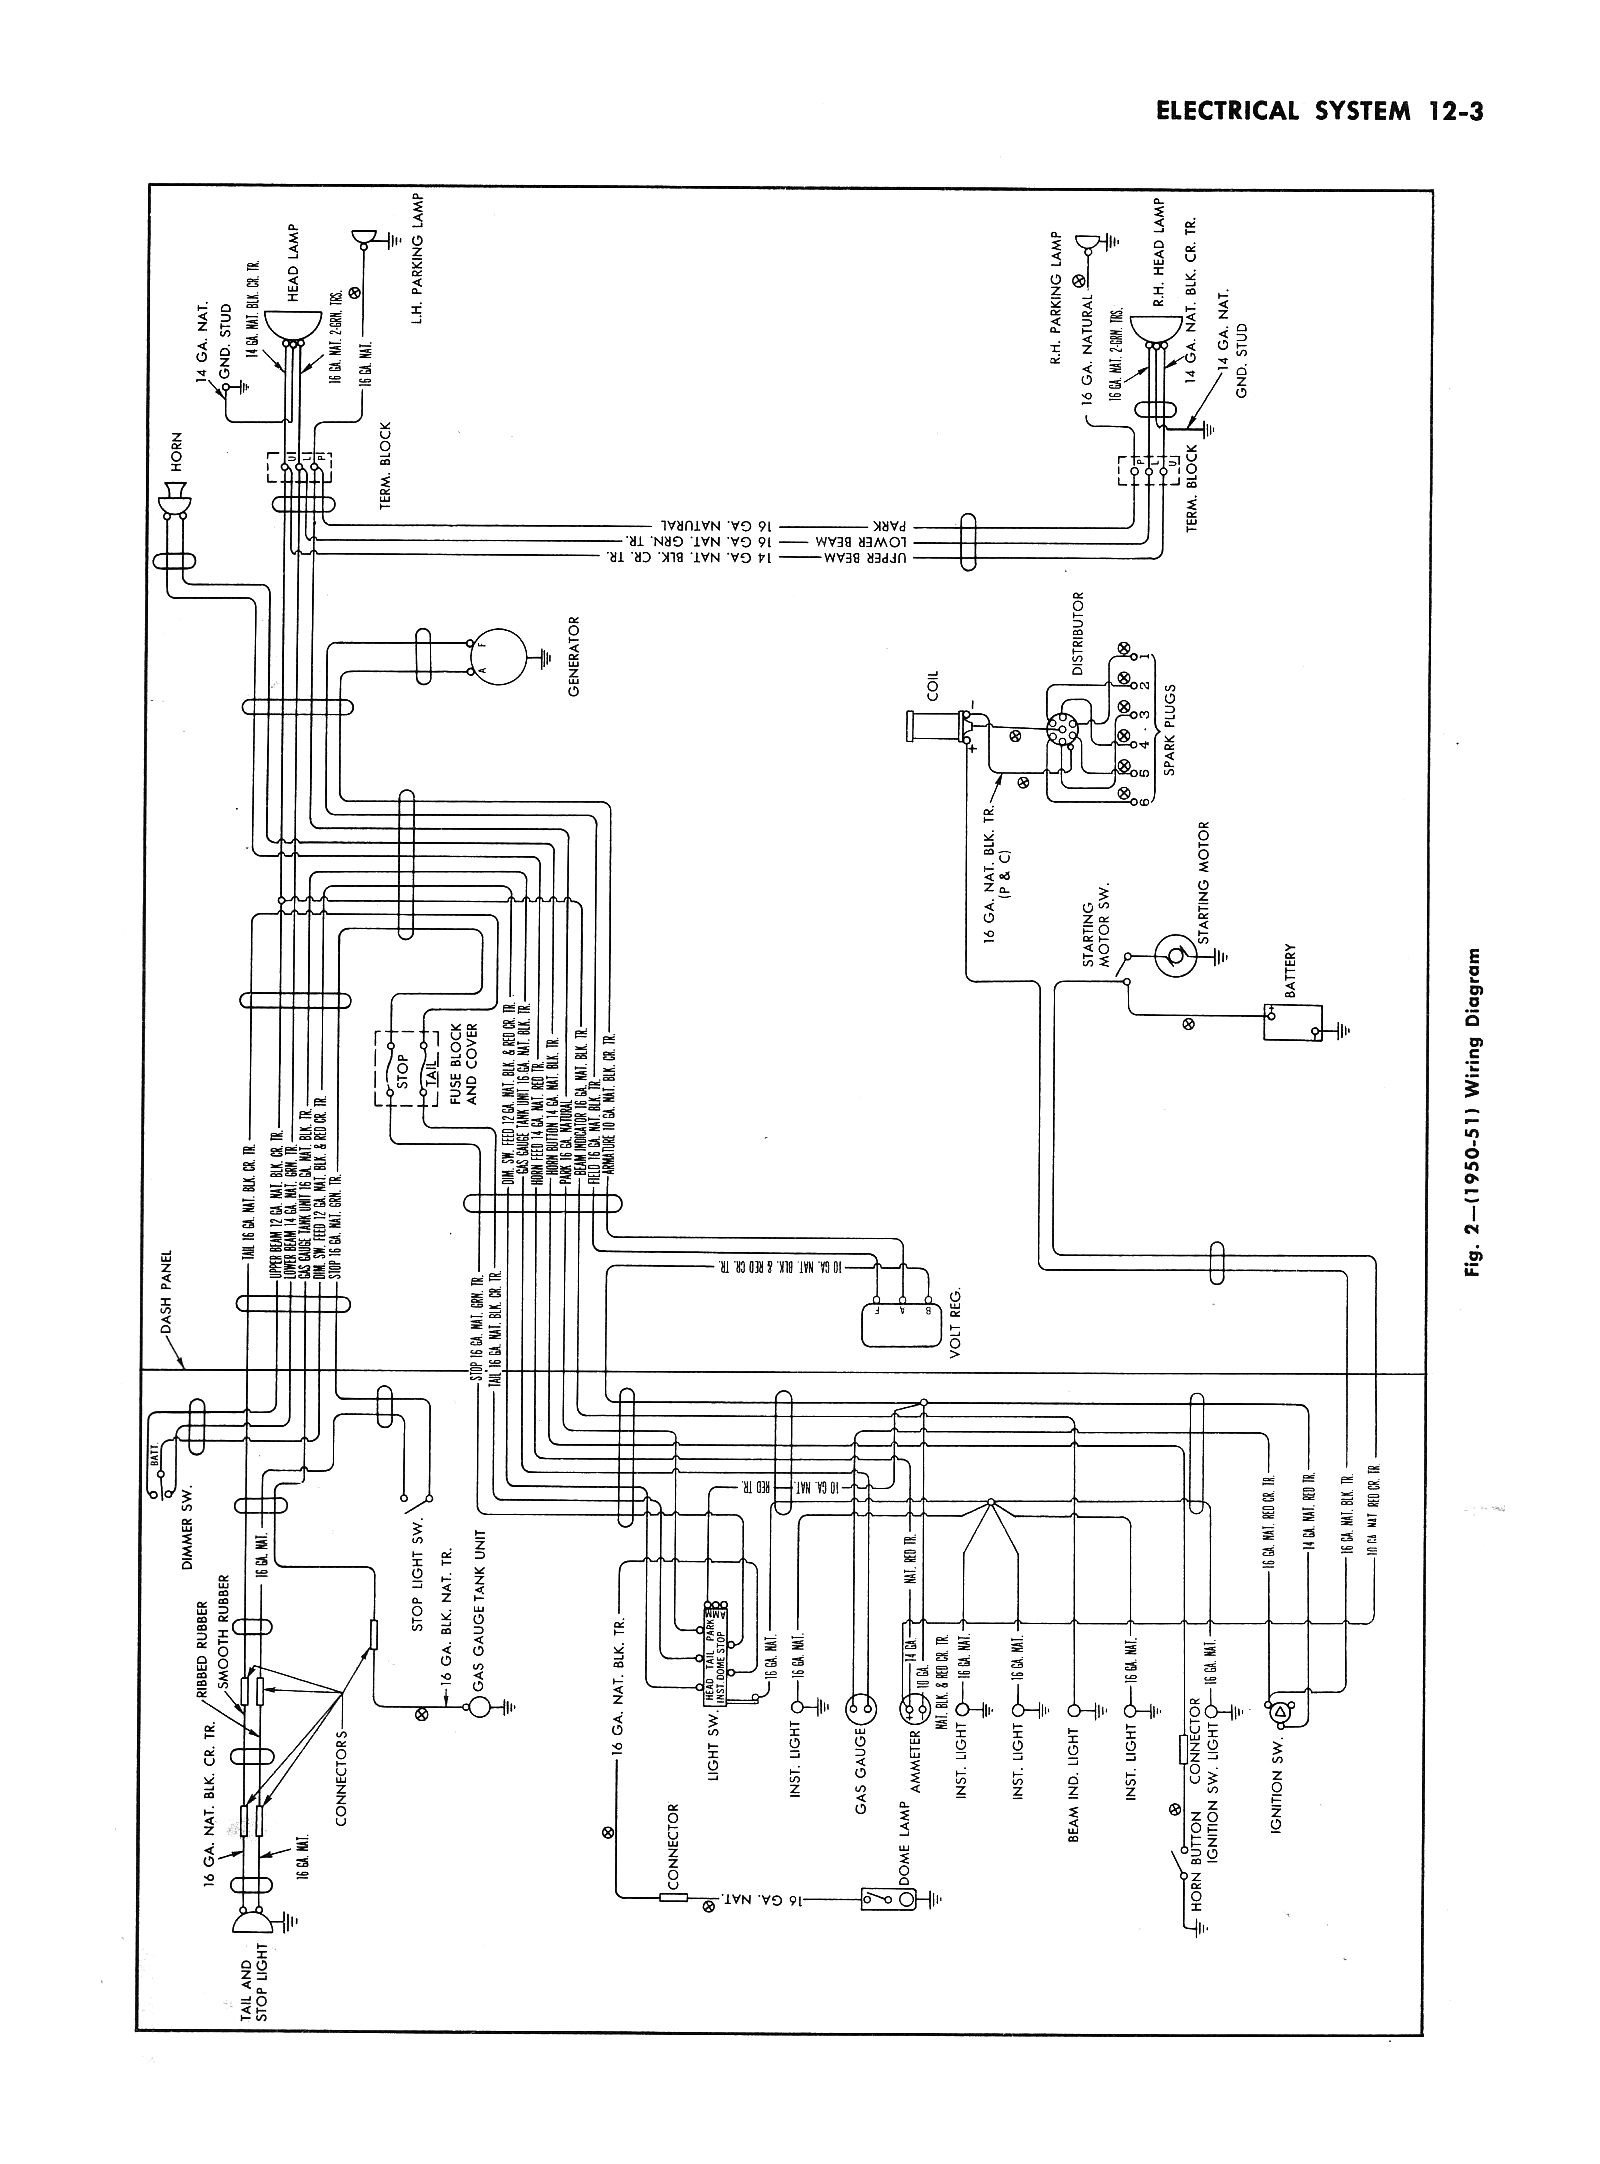 50ctsm1203 chevy wiring diagrams 12 Volt Alternator Wiring Diagram at eliteediting.co